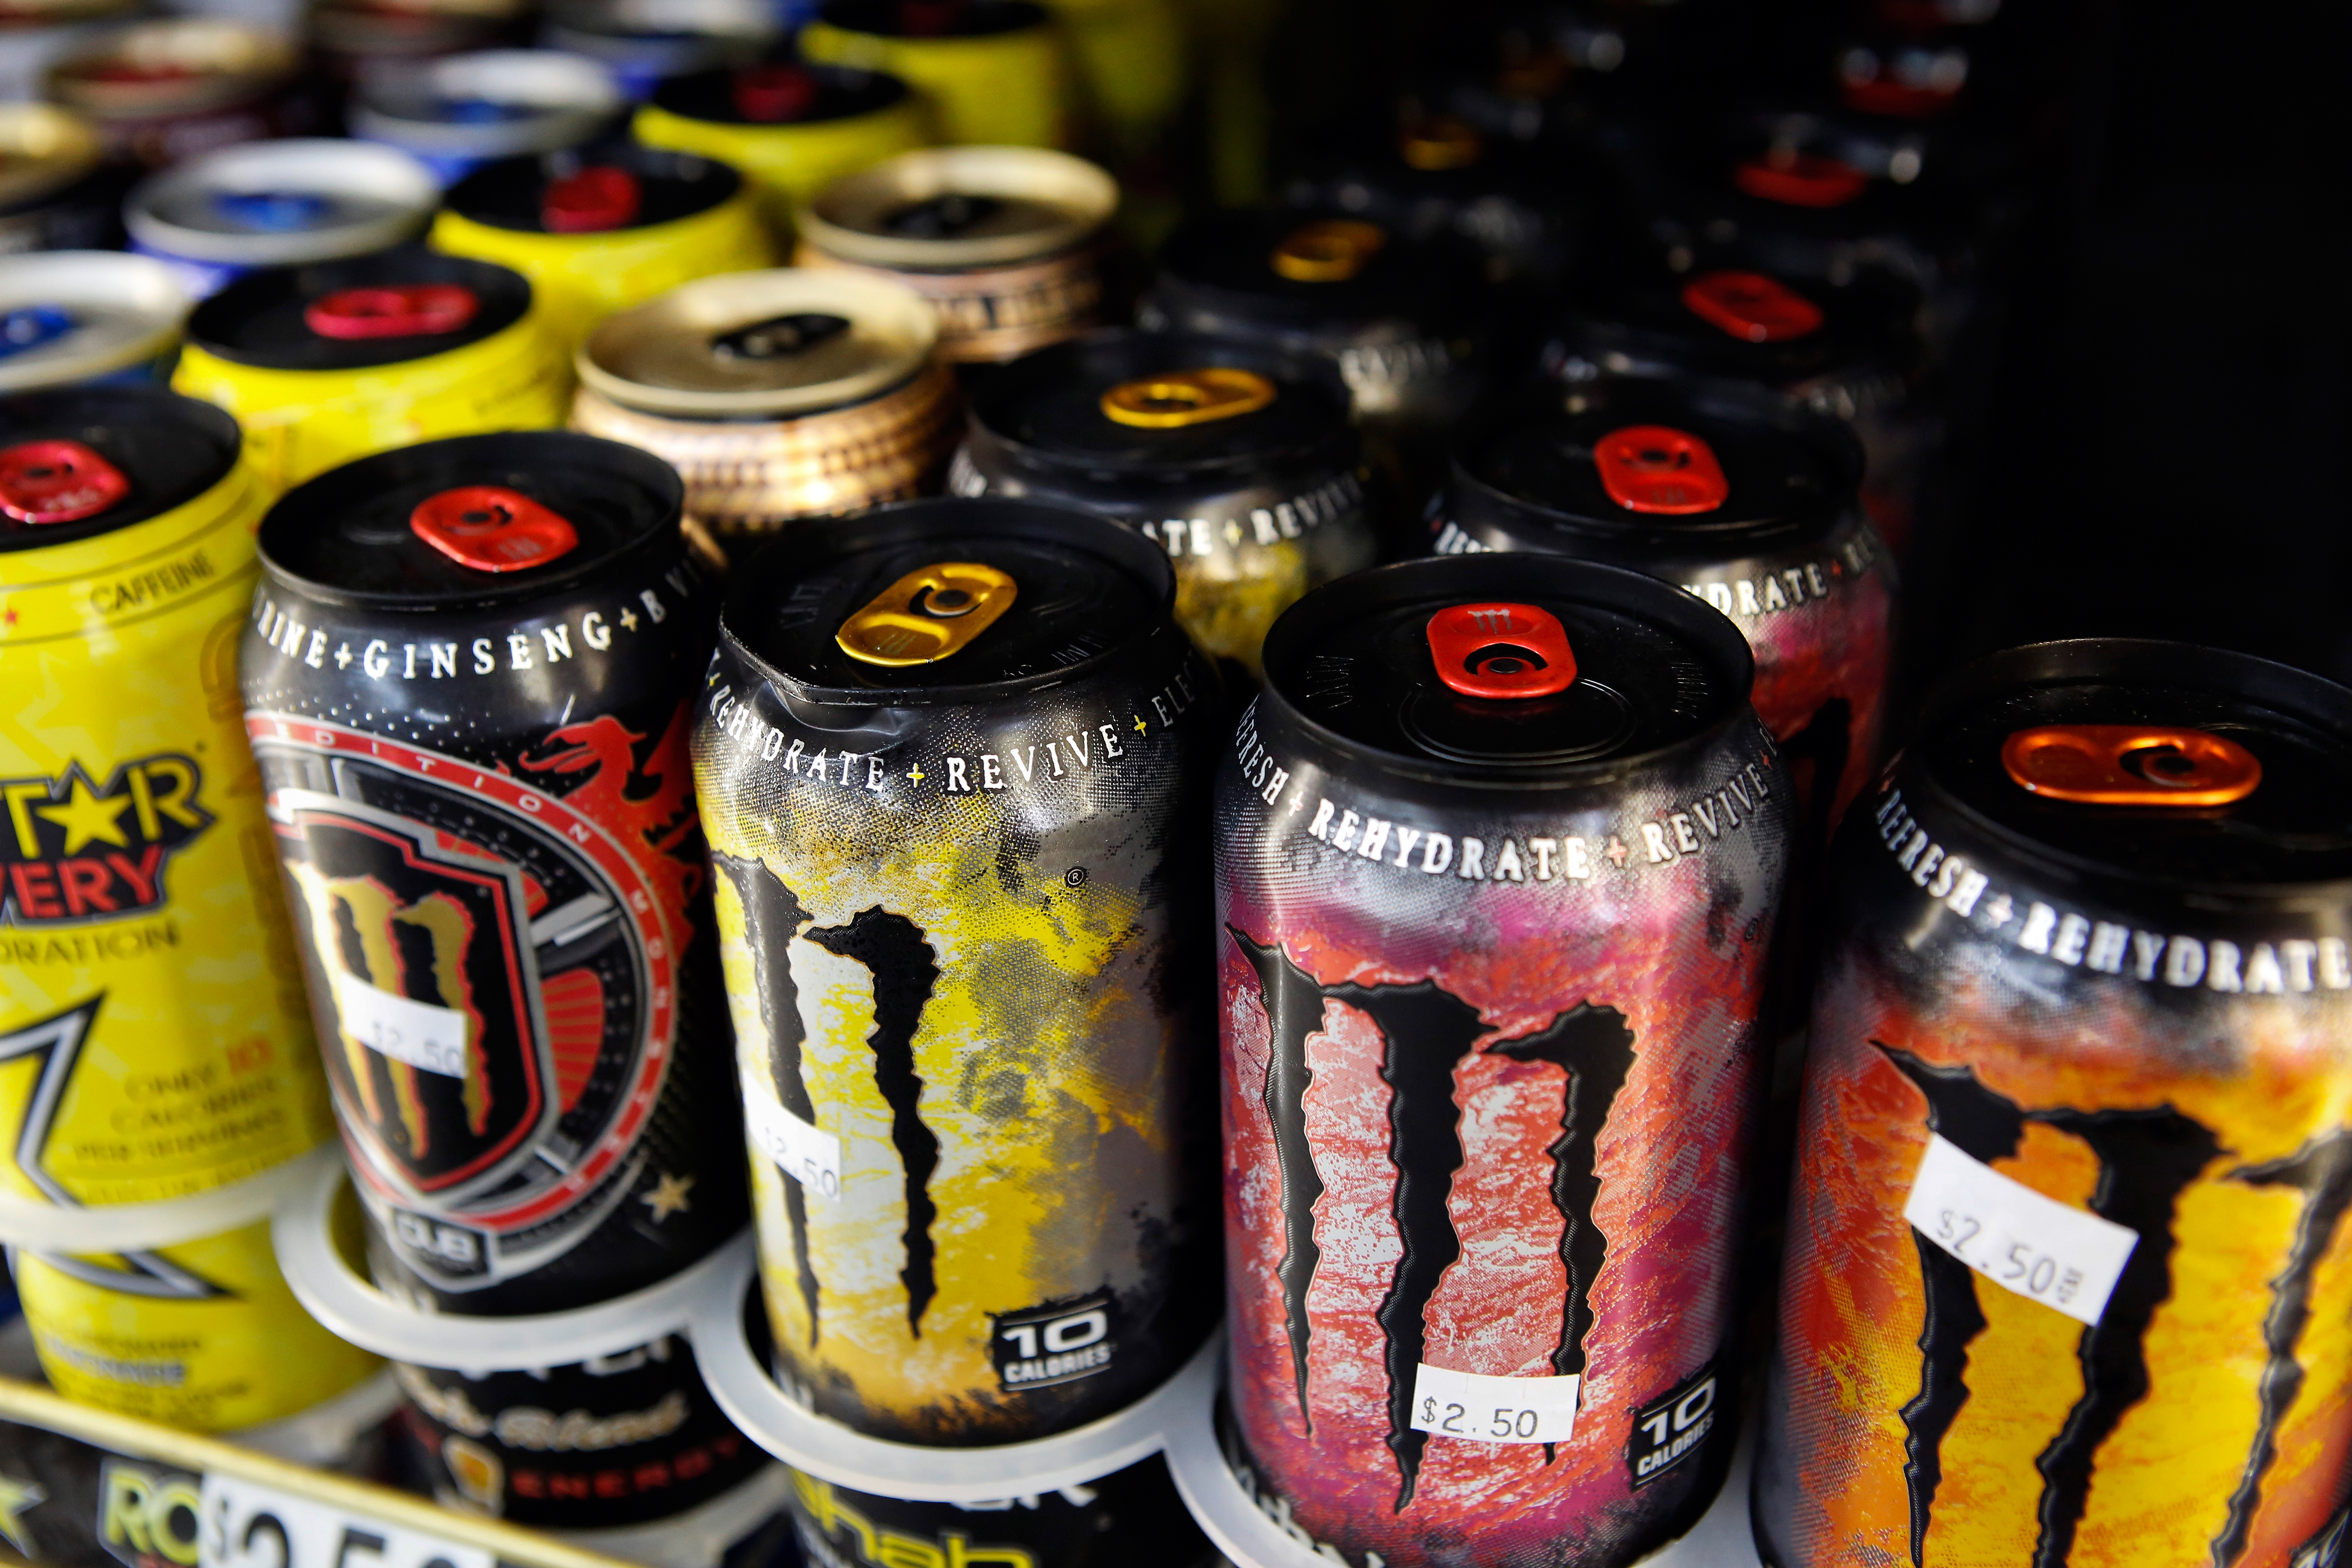 Cans of Monster Beverage Corp. energy drink are displayed for sale at a convenience store in Redondo Beach, California, U.S.